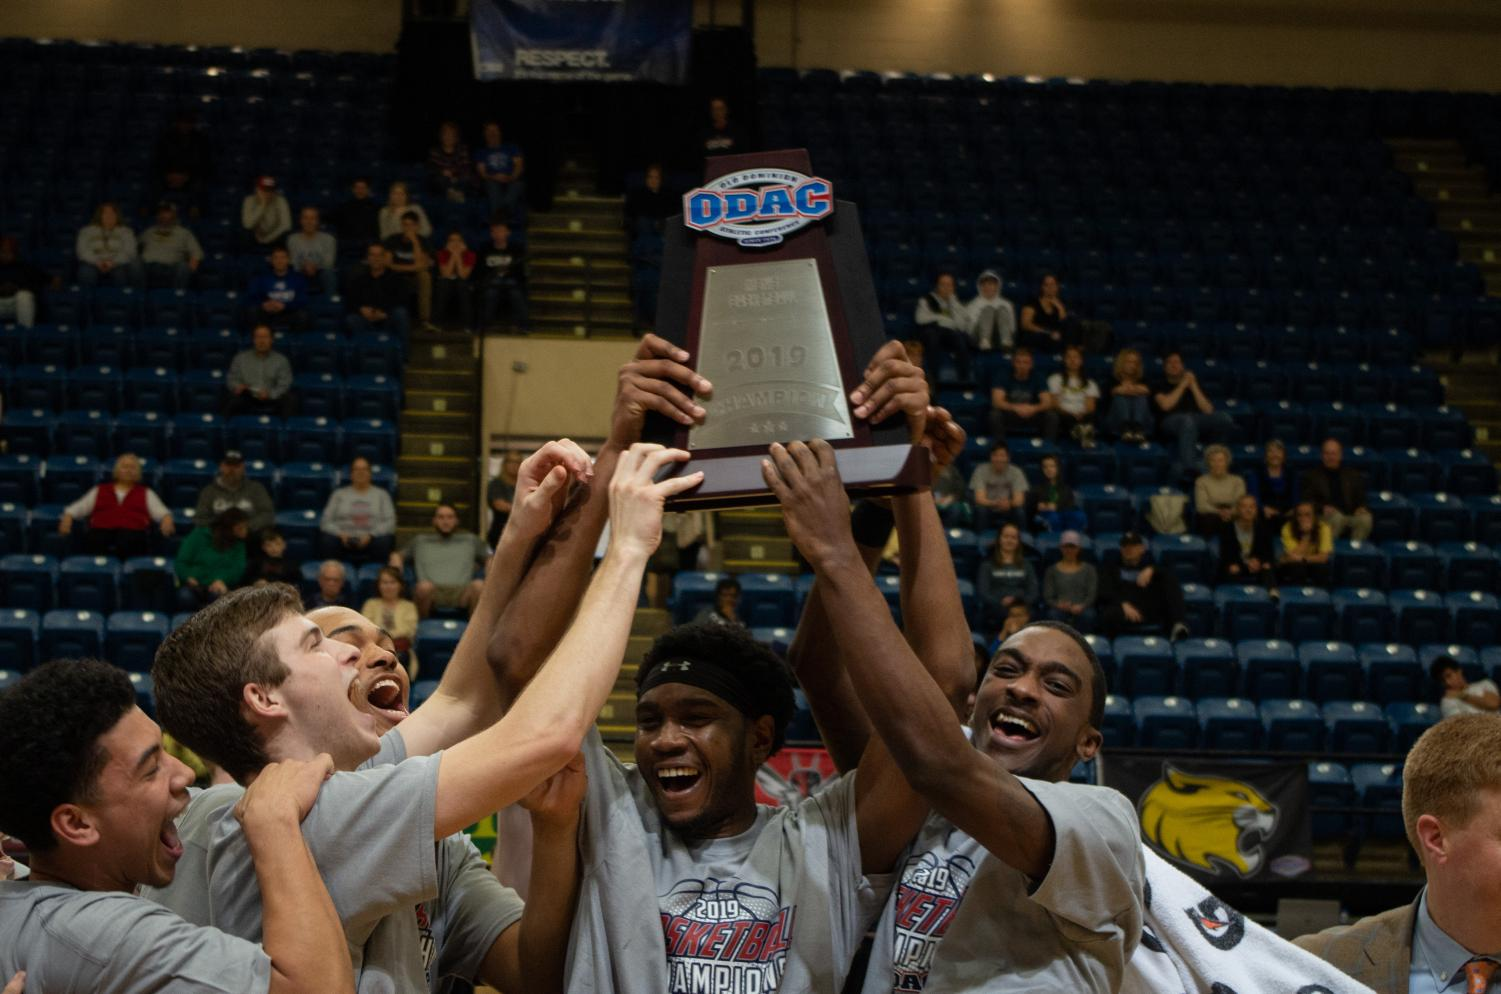 Senior forward Marcus Curry holds up the ODAC Tournament Championship trophy. Curry had 10 points in the victory.